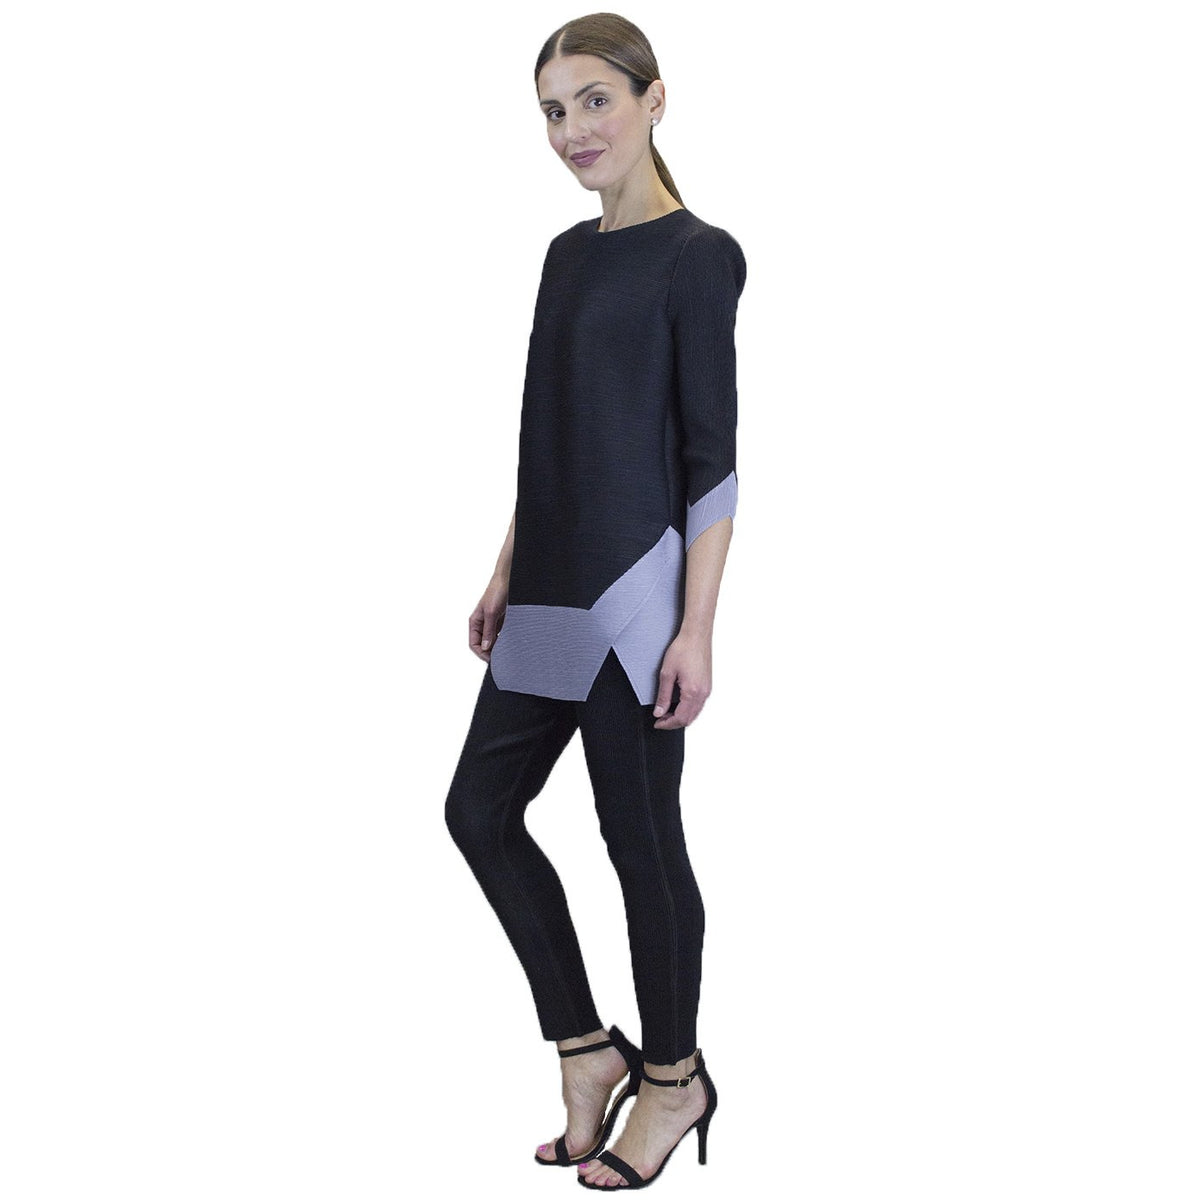 3/4 Sleeve Two Tone Top - Black and Gray